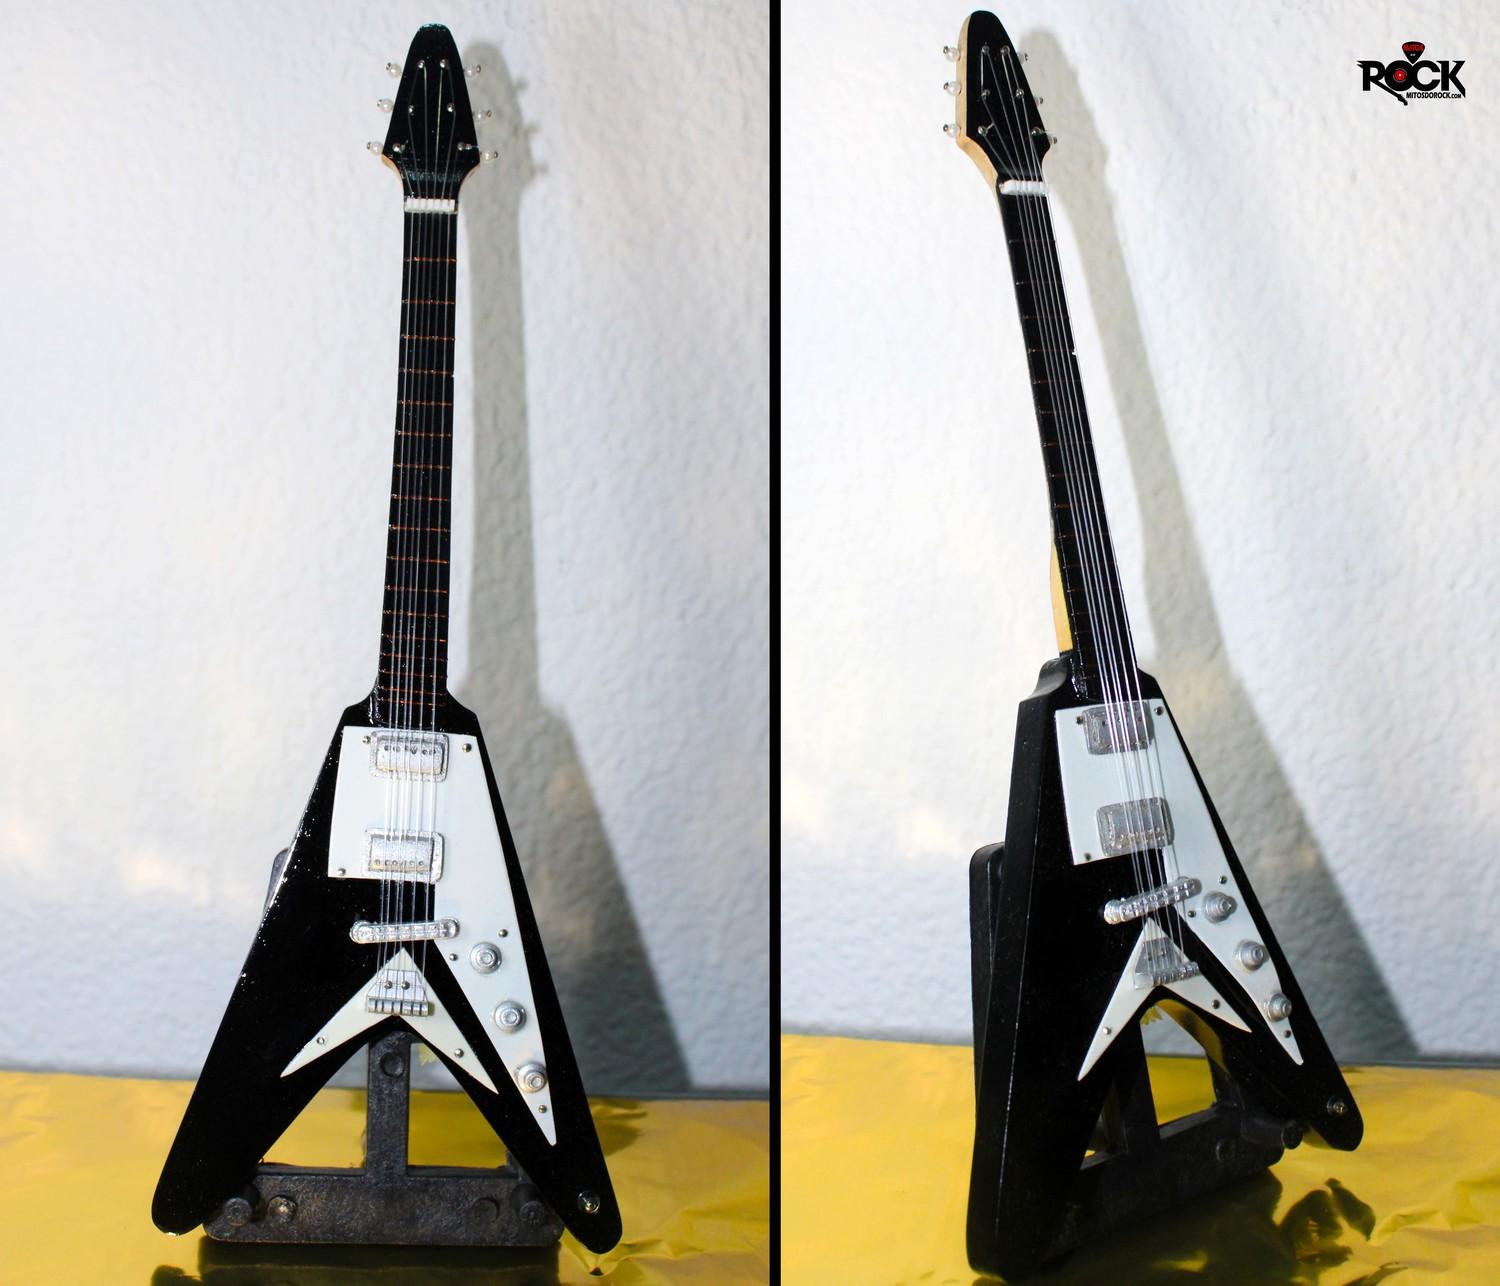 Flying V - Guitarra Realista em Miniatura